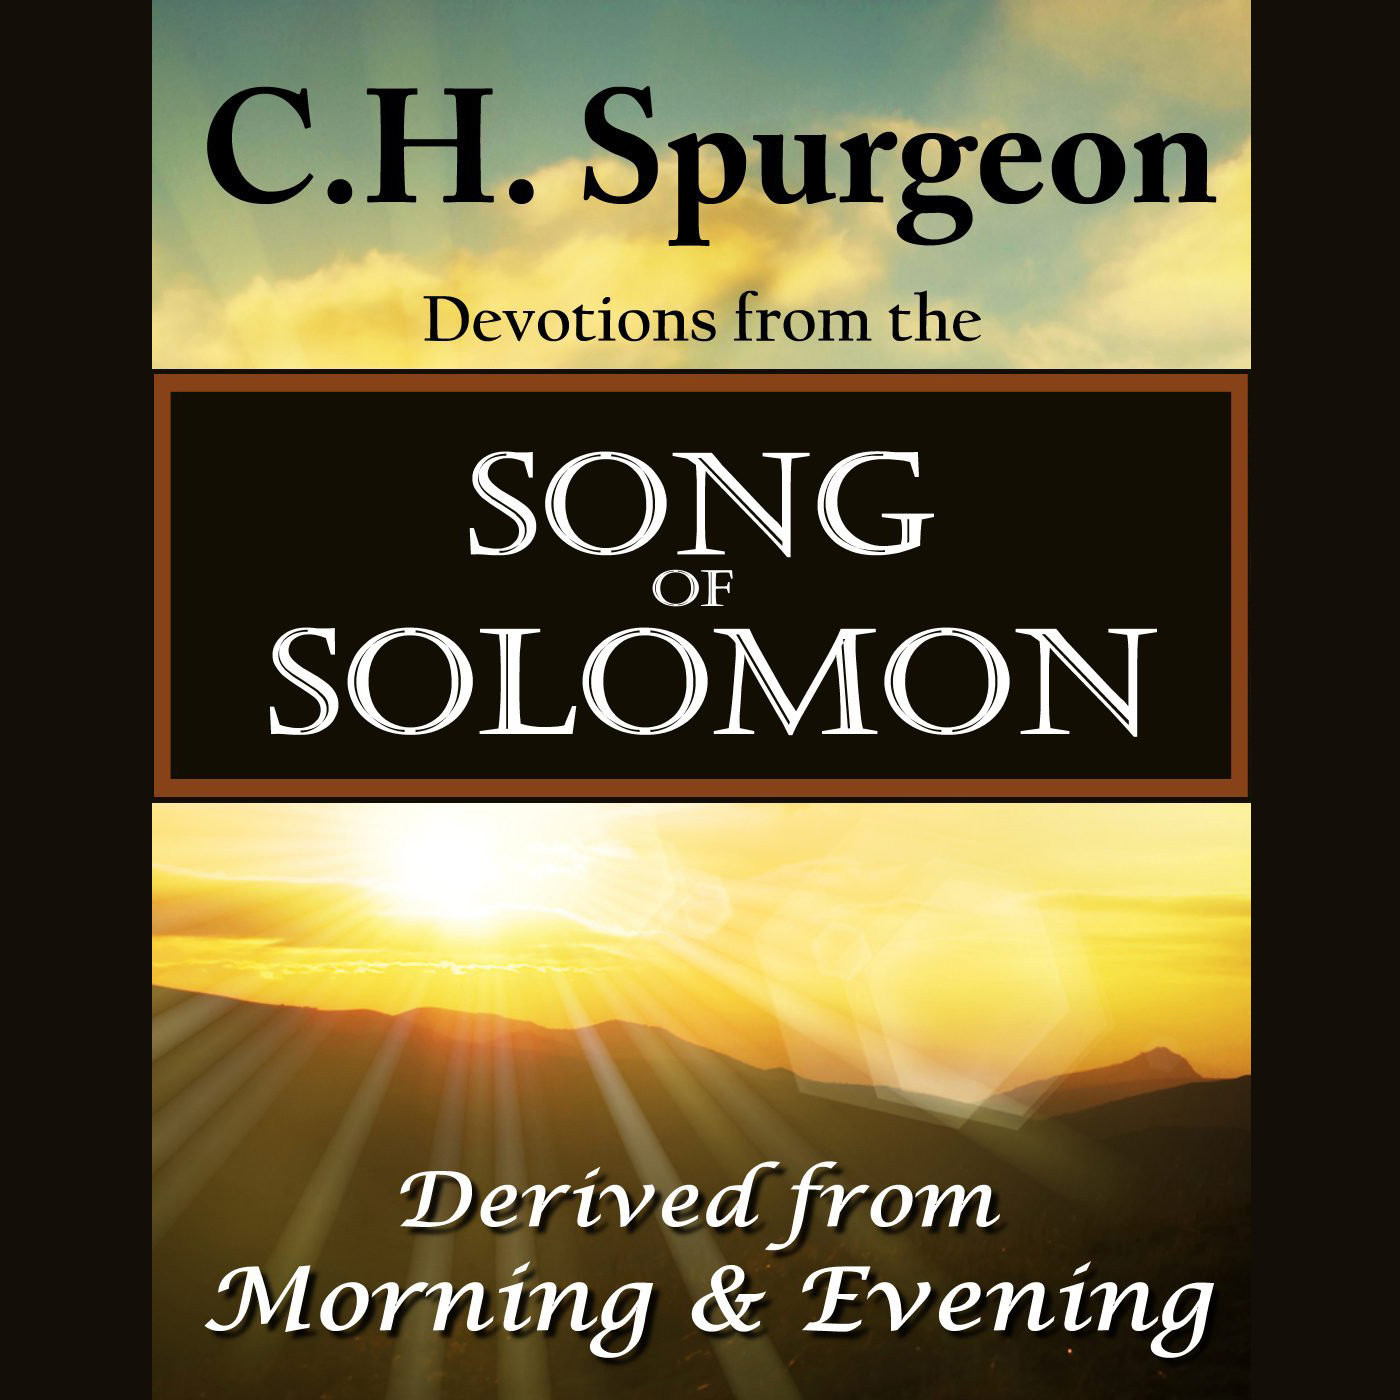 Printable C. H. Spurgeon on the Song of Solomon: Daily Meditations and Devotions Audiobook Cover Art